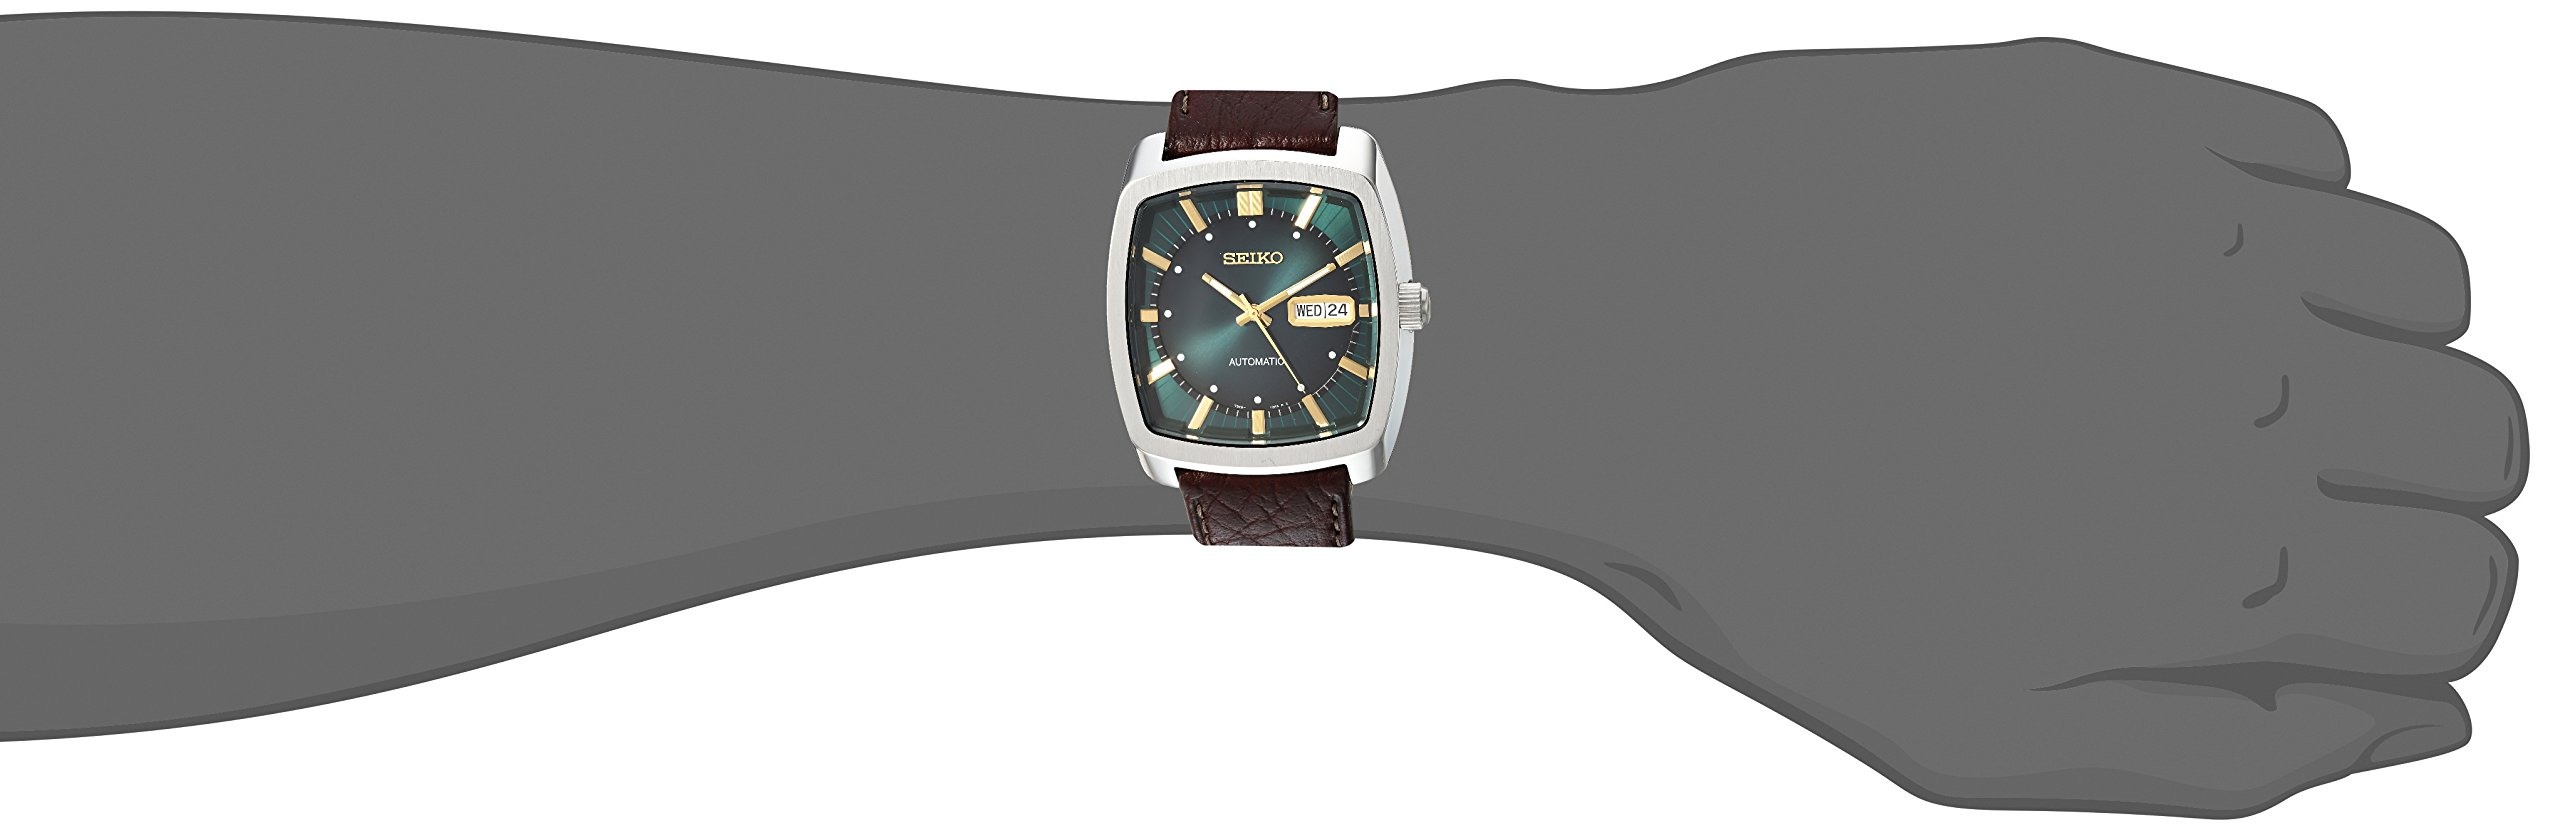 Seiko Men's Recraft Series Automatic Leather Casual Watch (Model: SNKP27) by SEIKO (Image #3)